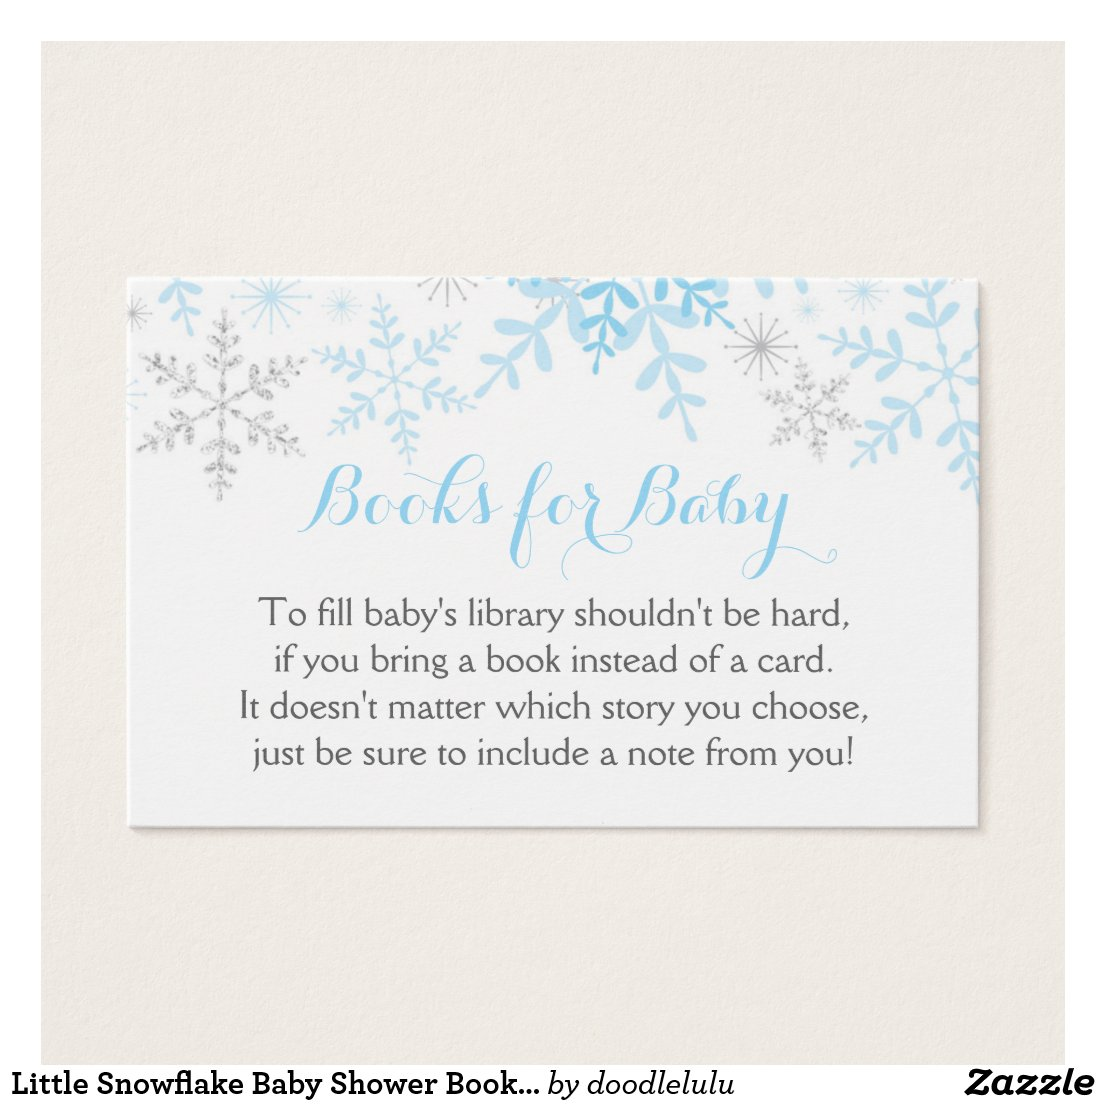 Little Snowflake Baby Shower Book Request Card